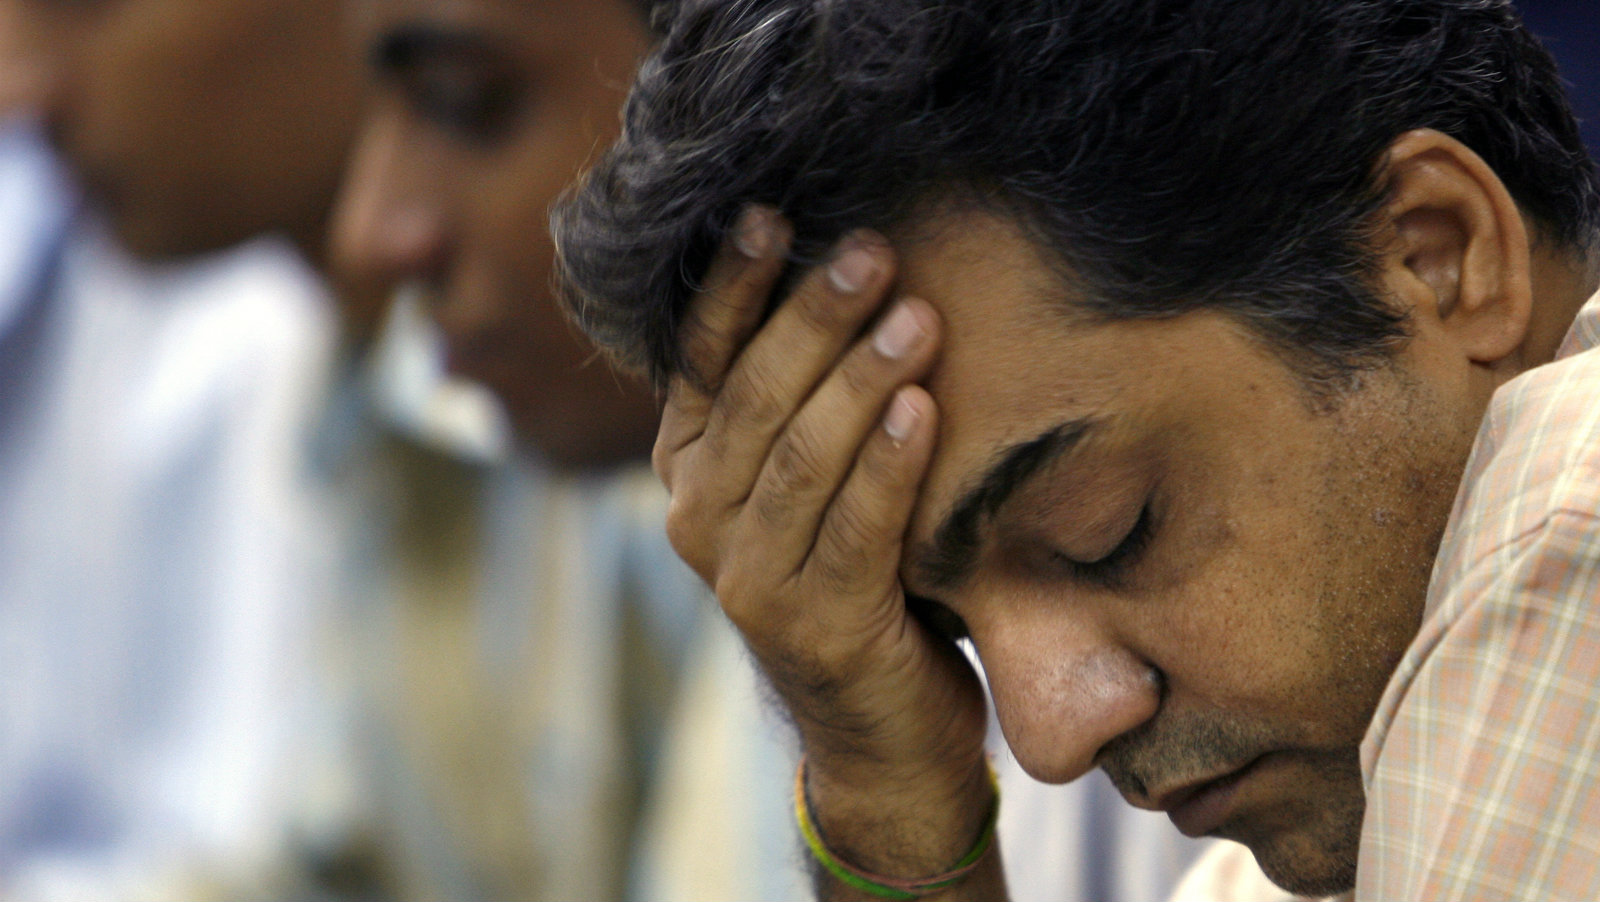 A stockbroker reacts during a trading session at a brokerage in Mumbai